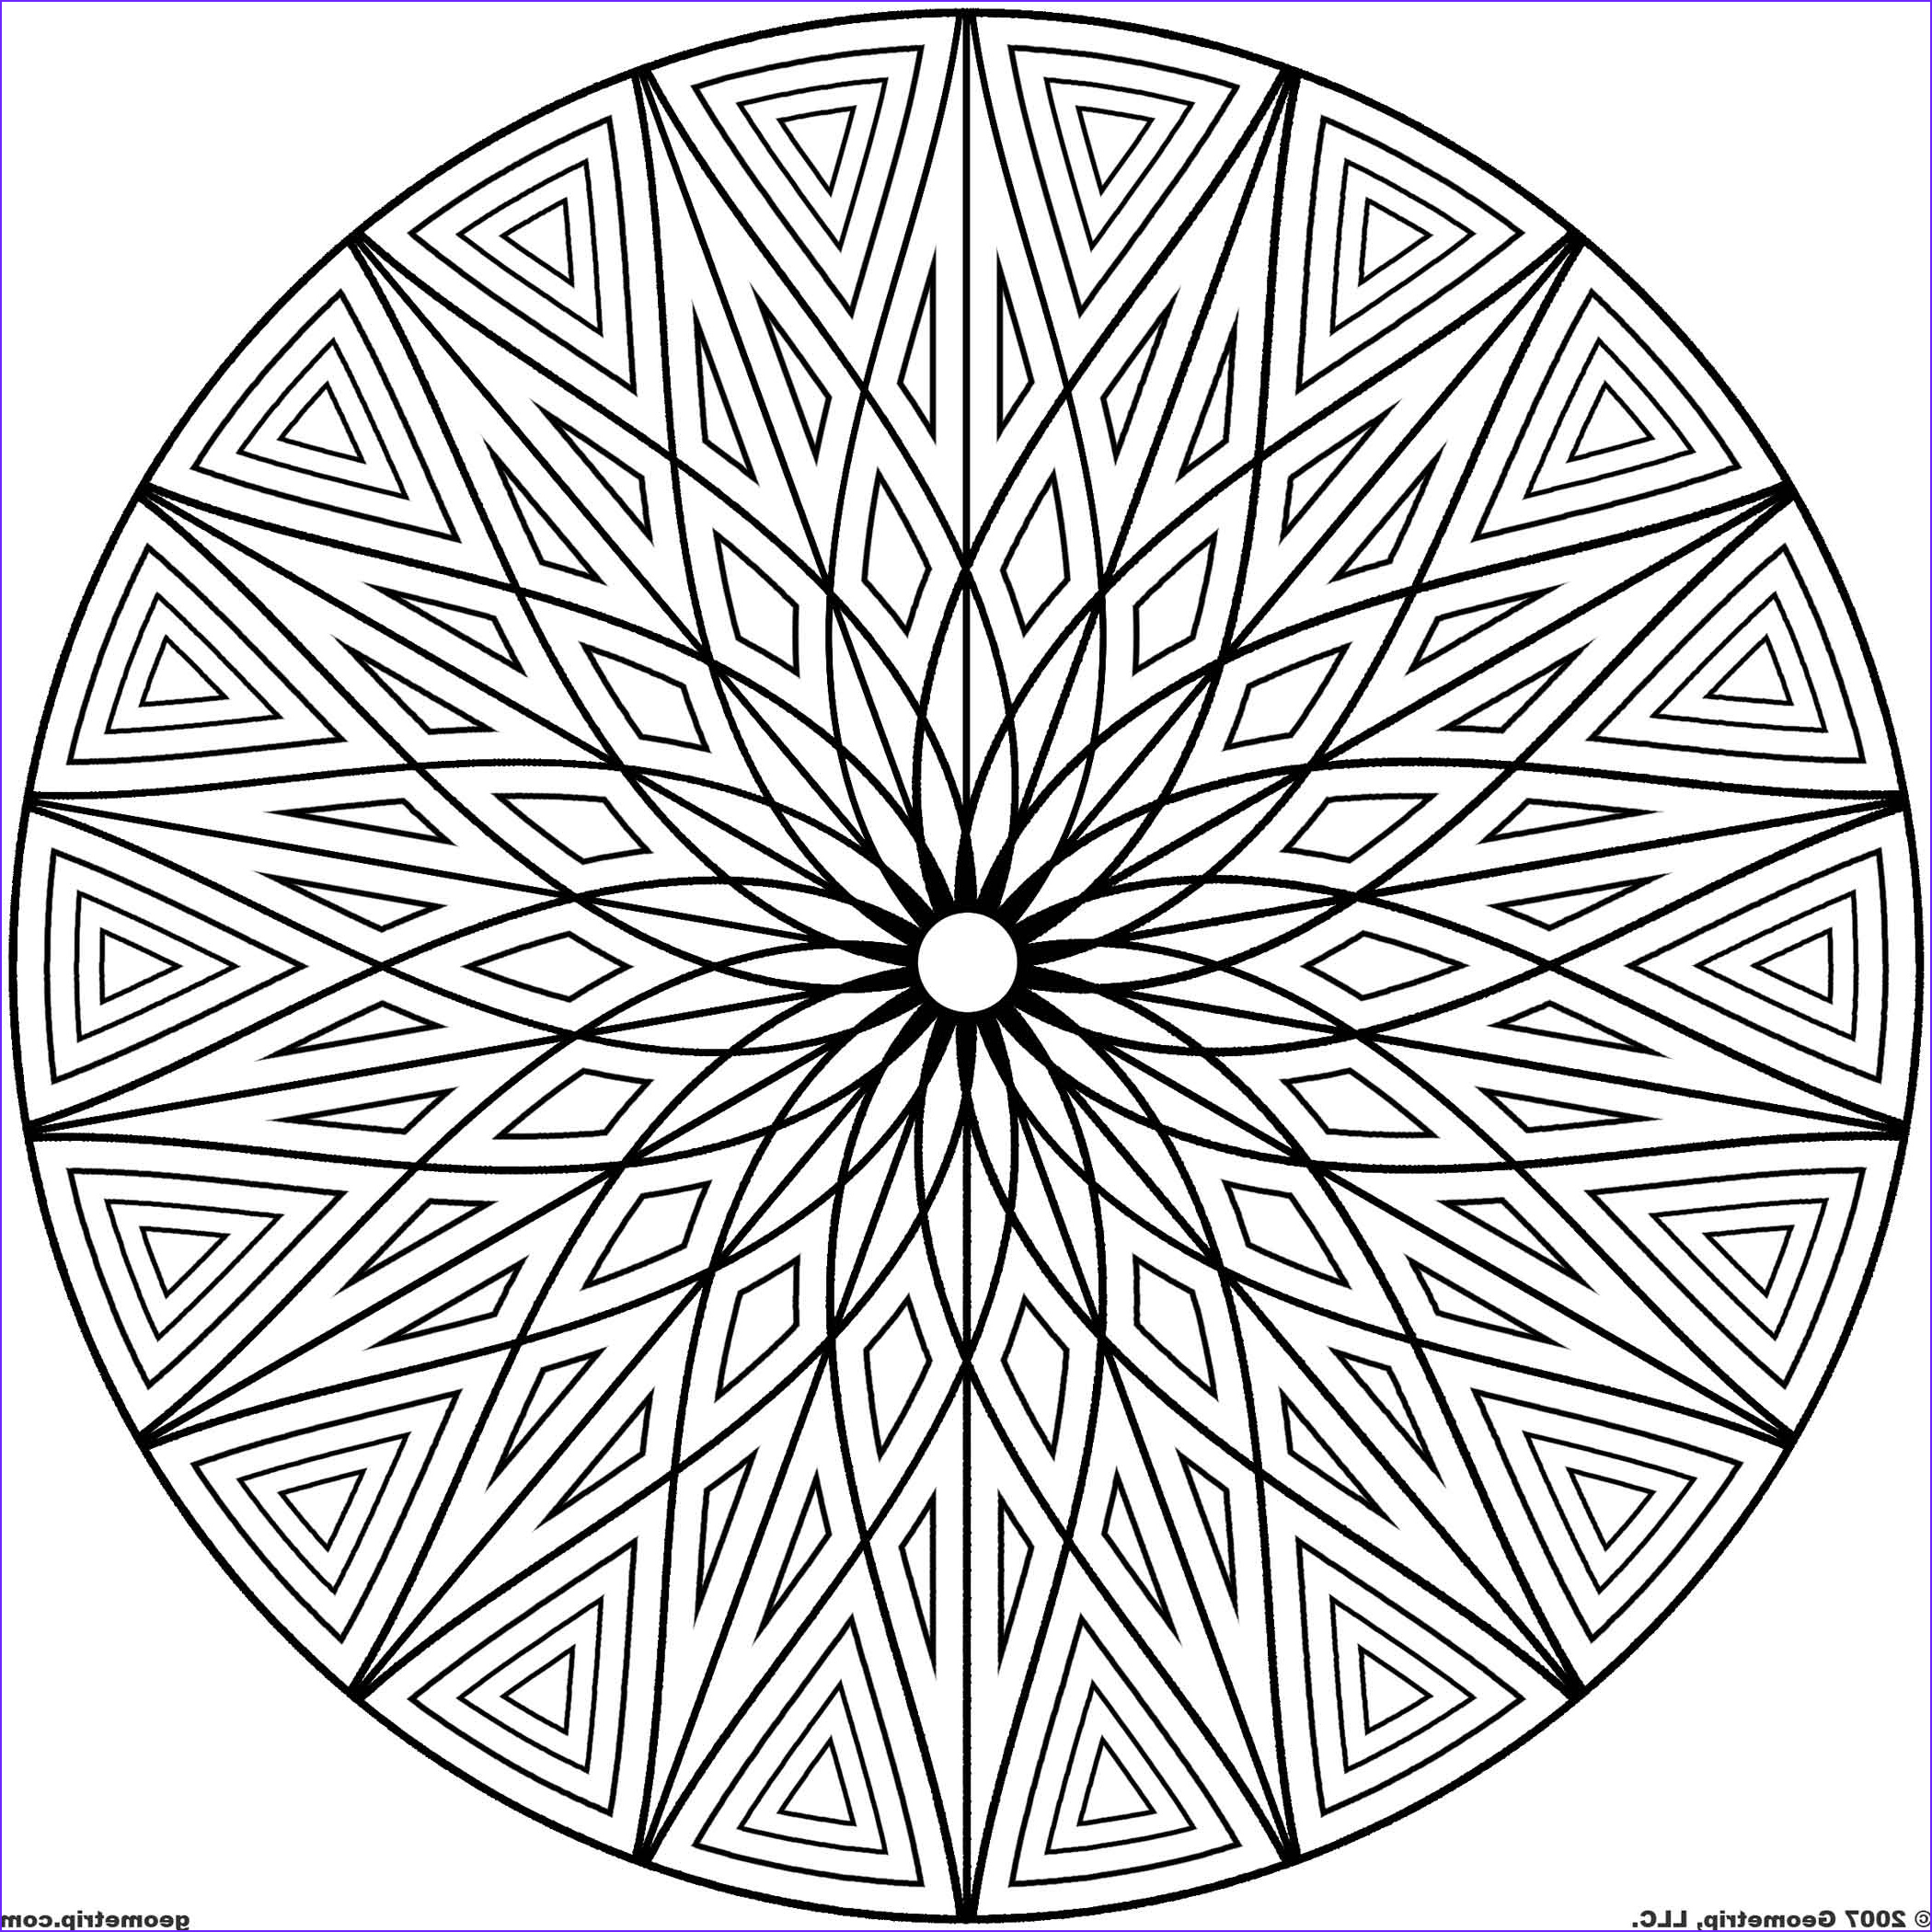 Coloring Pages Designs Inspirational Photos Coloring Pages Cool Designs Coloring Home